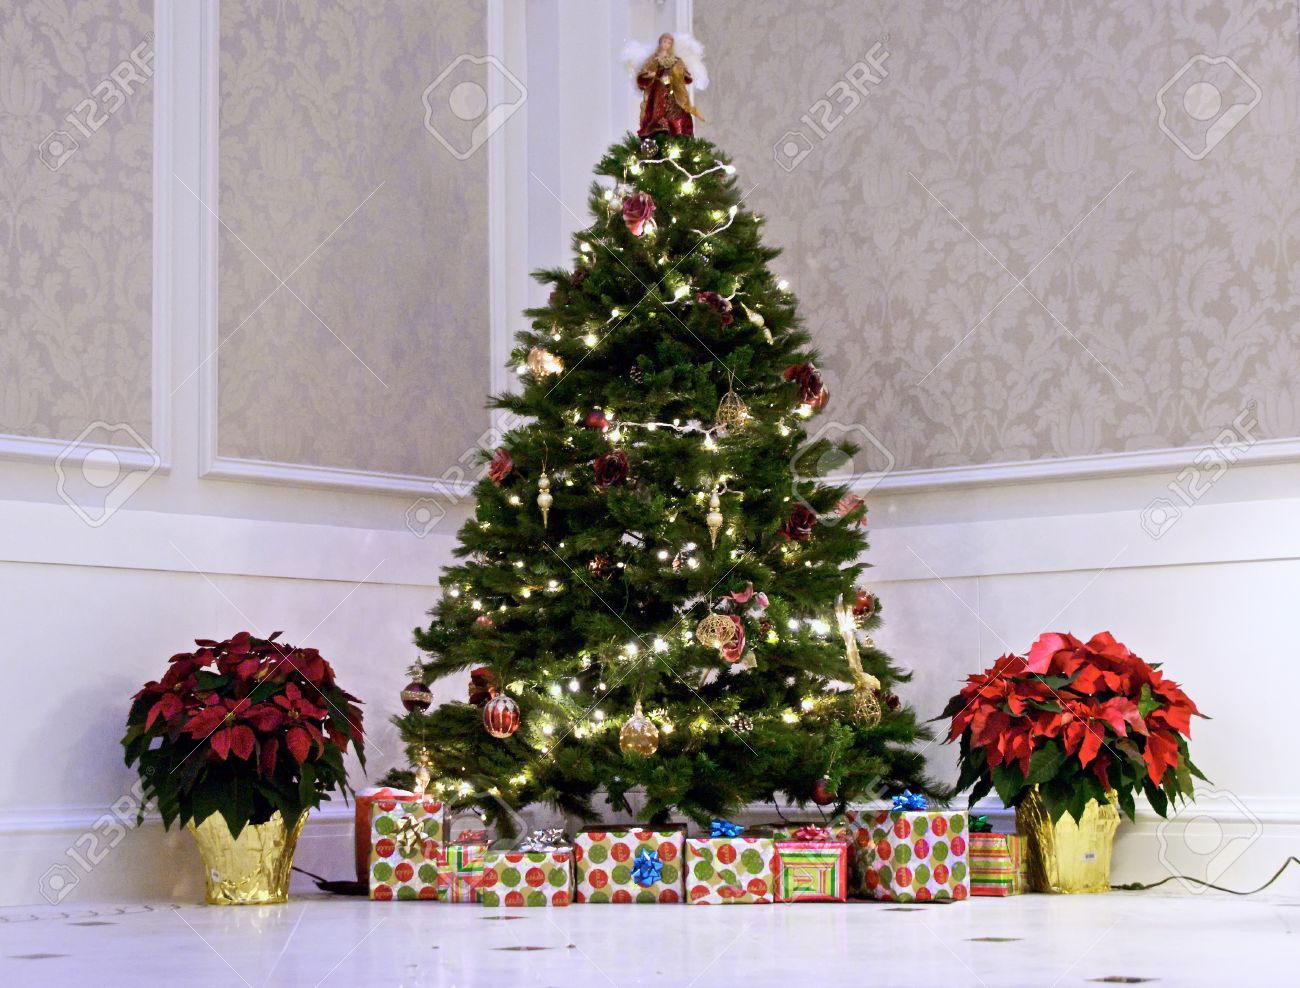 Large Indoor Christmas Tree With Presents And Plants Stock Photo ...